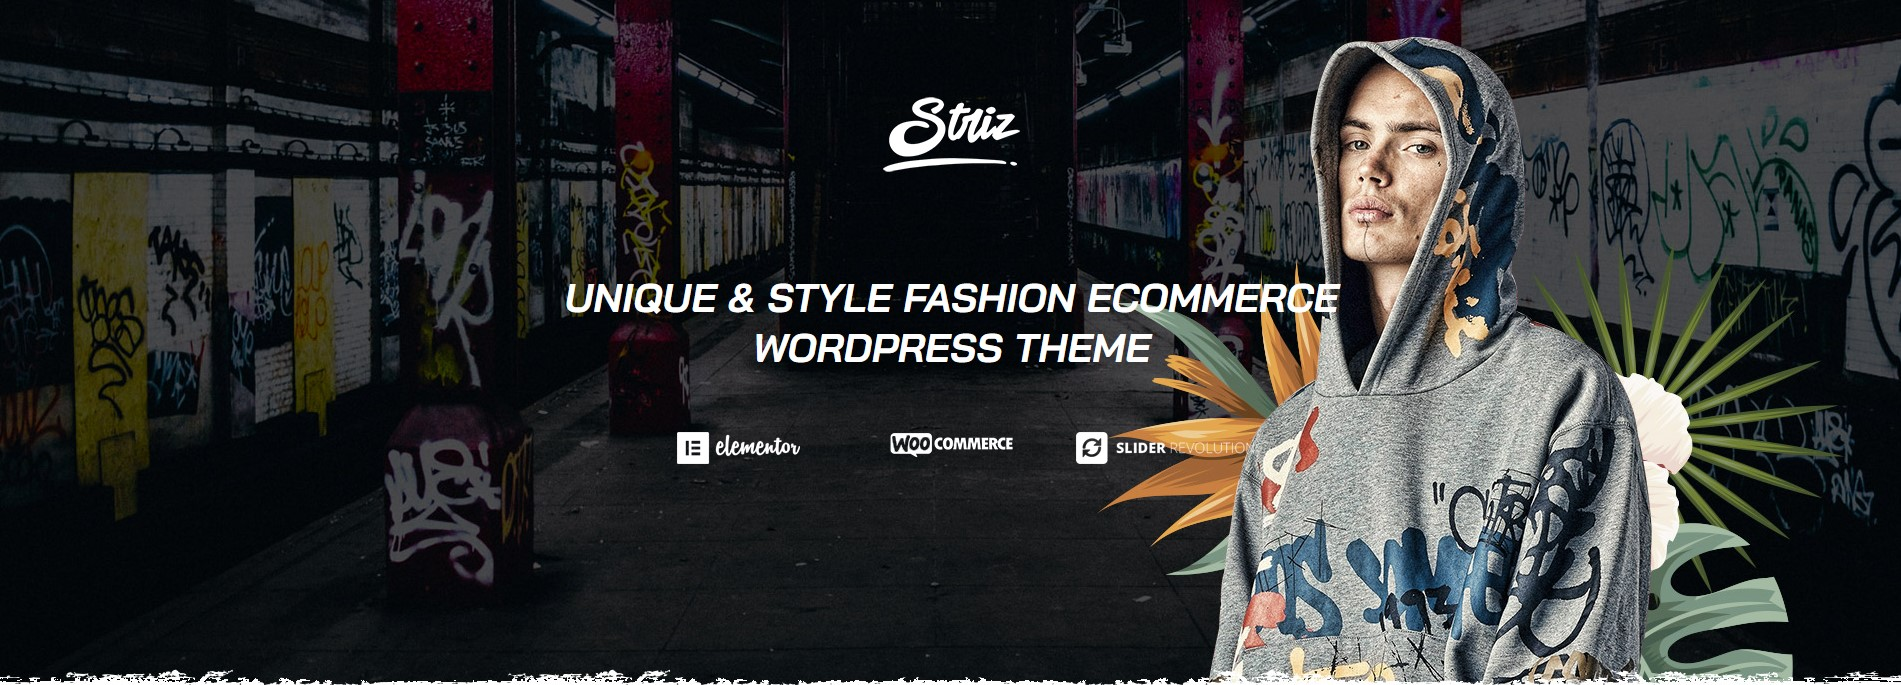 striz stress fashion wordpress theme